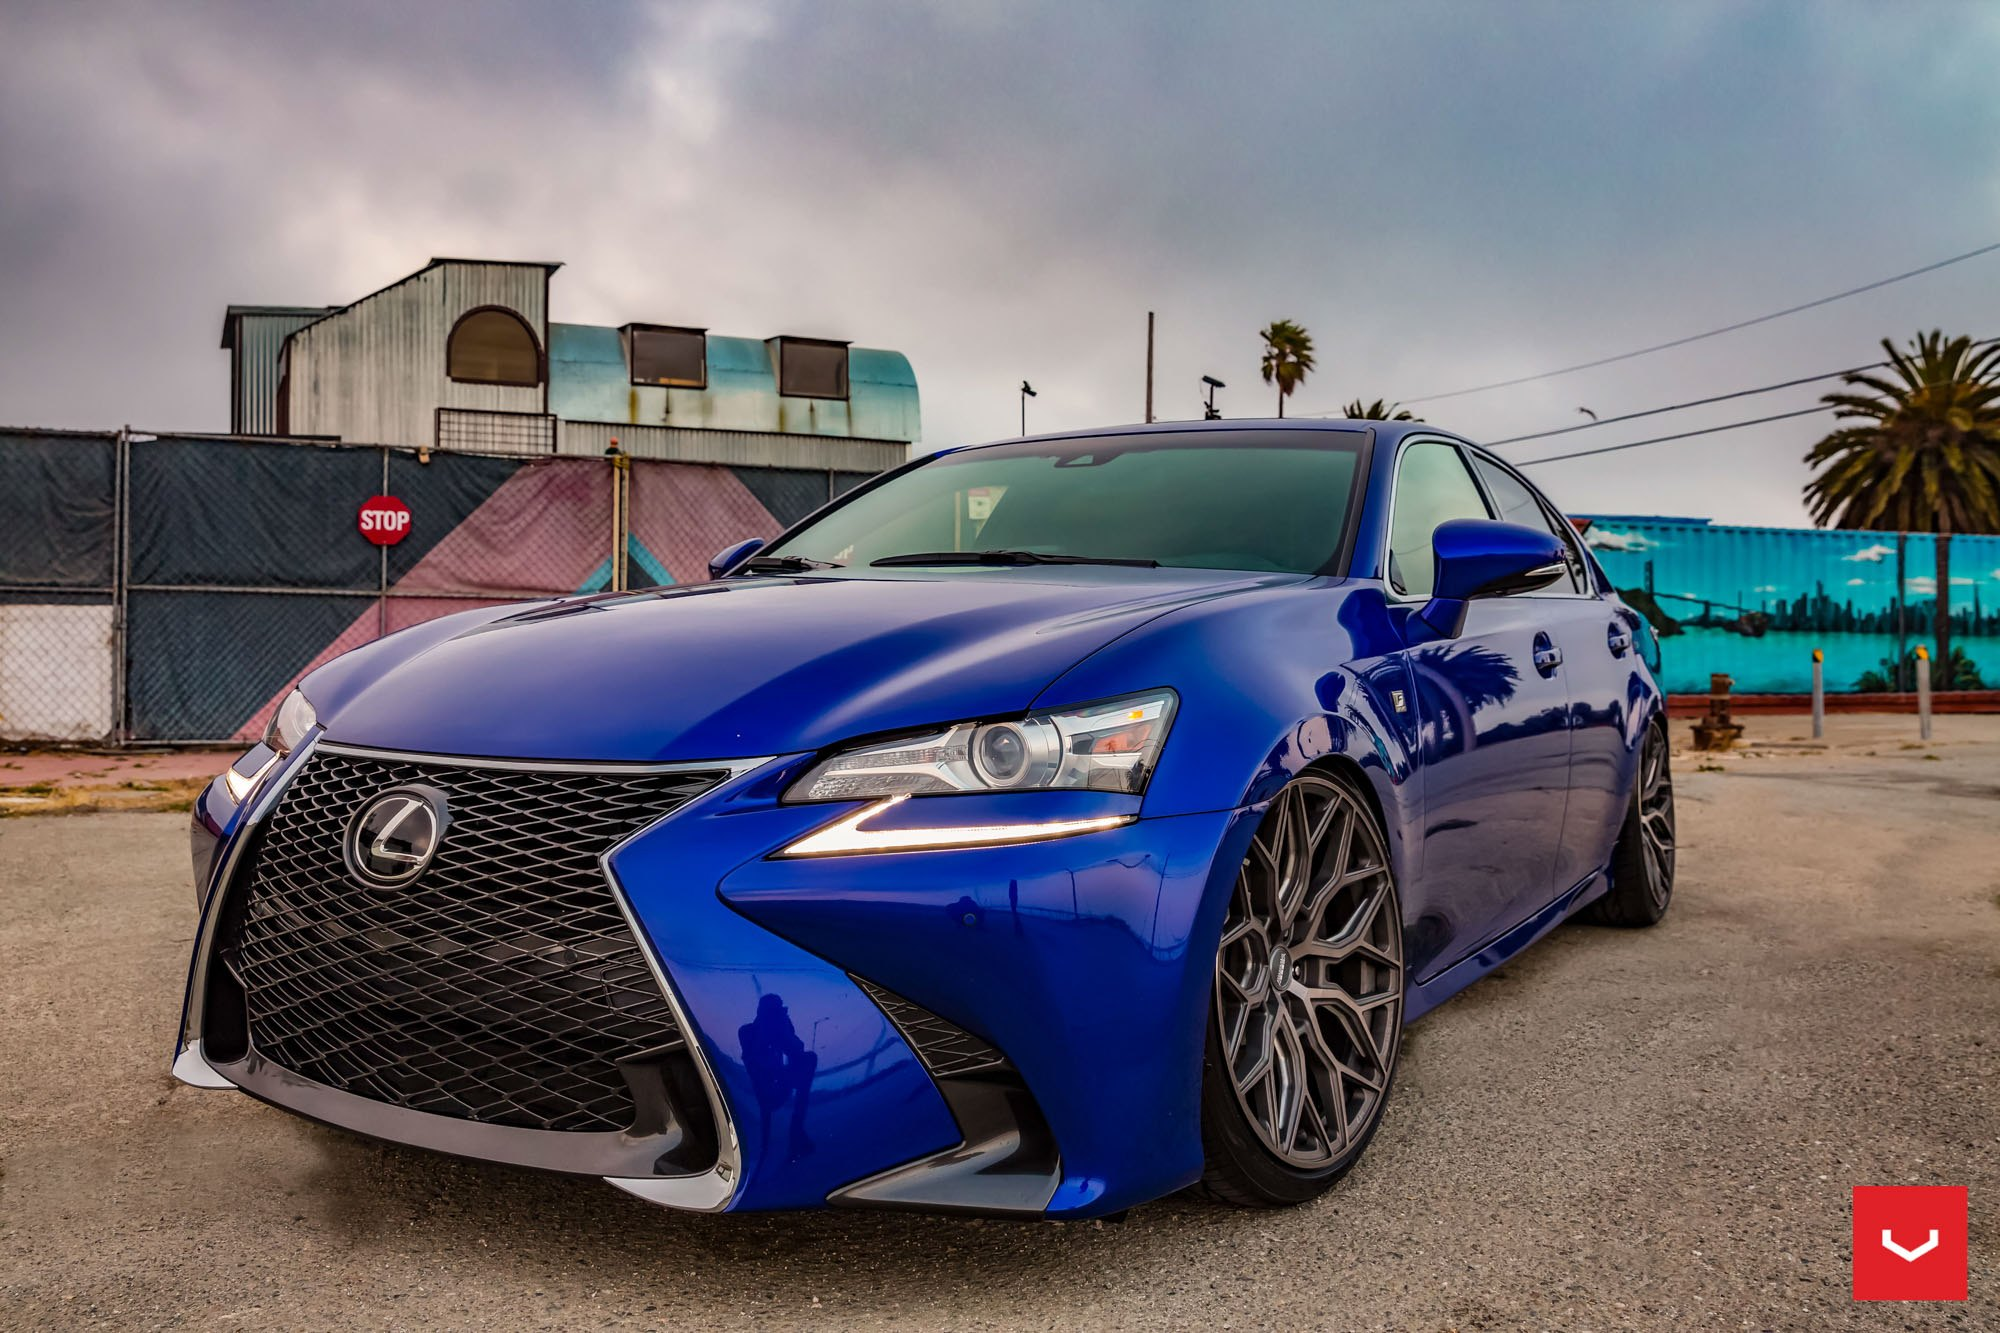 Aftermarket Front Bumper on Blue Lexus GS - Photo by Vossen